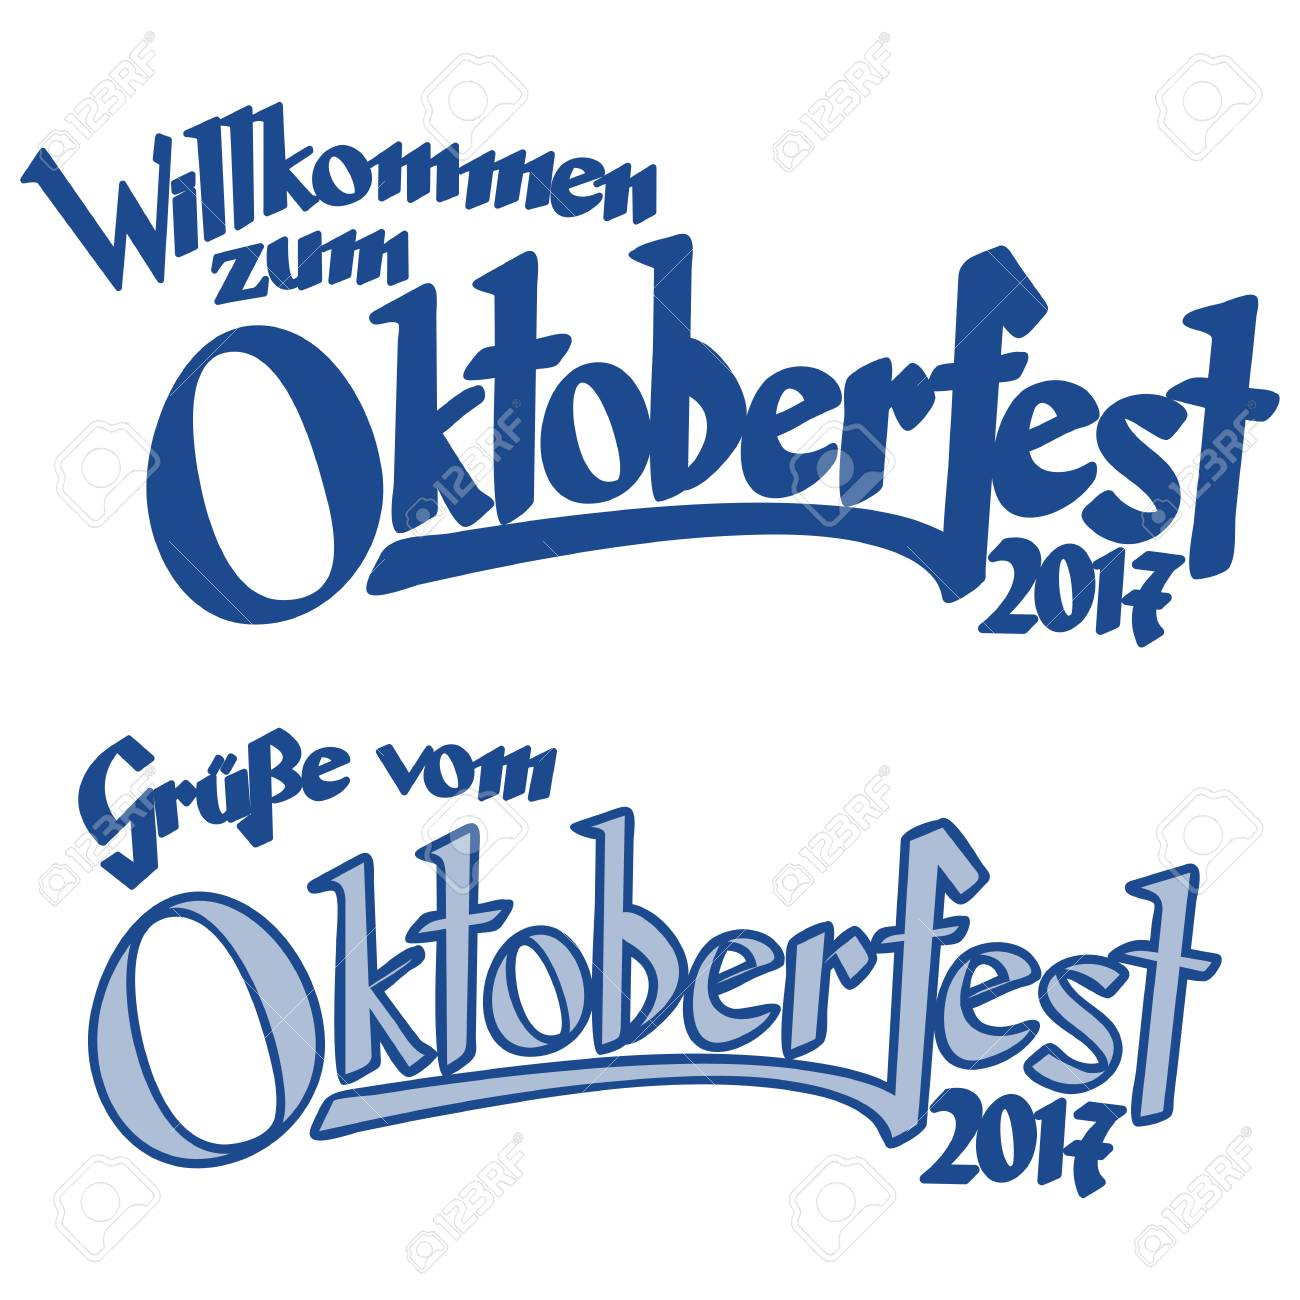 Blue and white header with text greetings from oktoberfest and blue and white header with text greetings from oktoberfest and welcome to the oktoberfest 2017 m4hsunfo